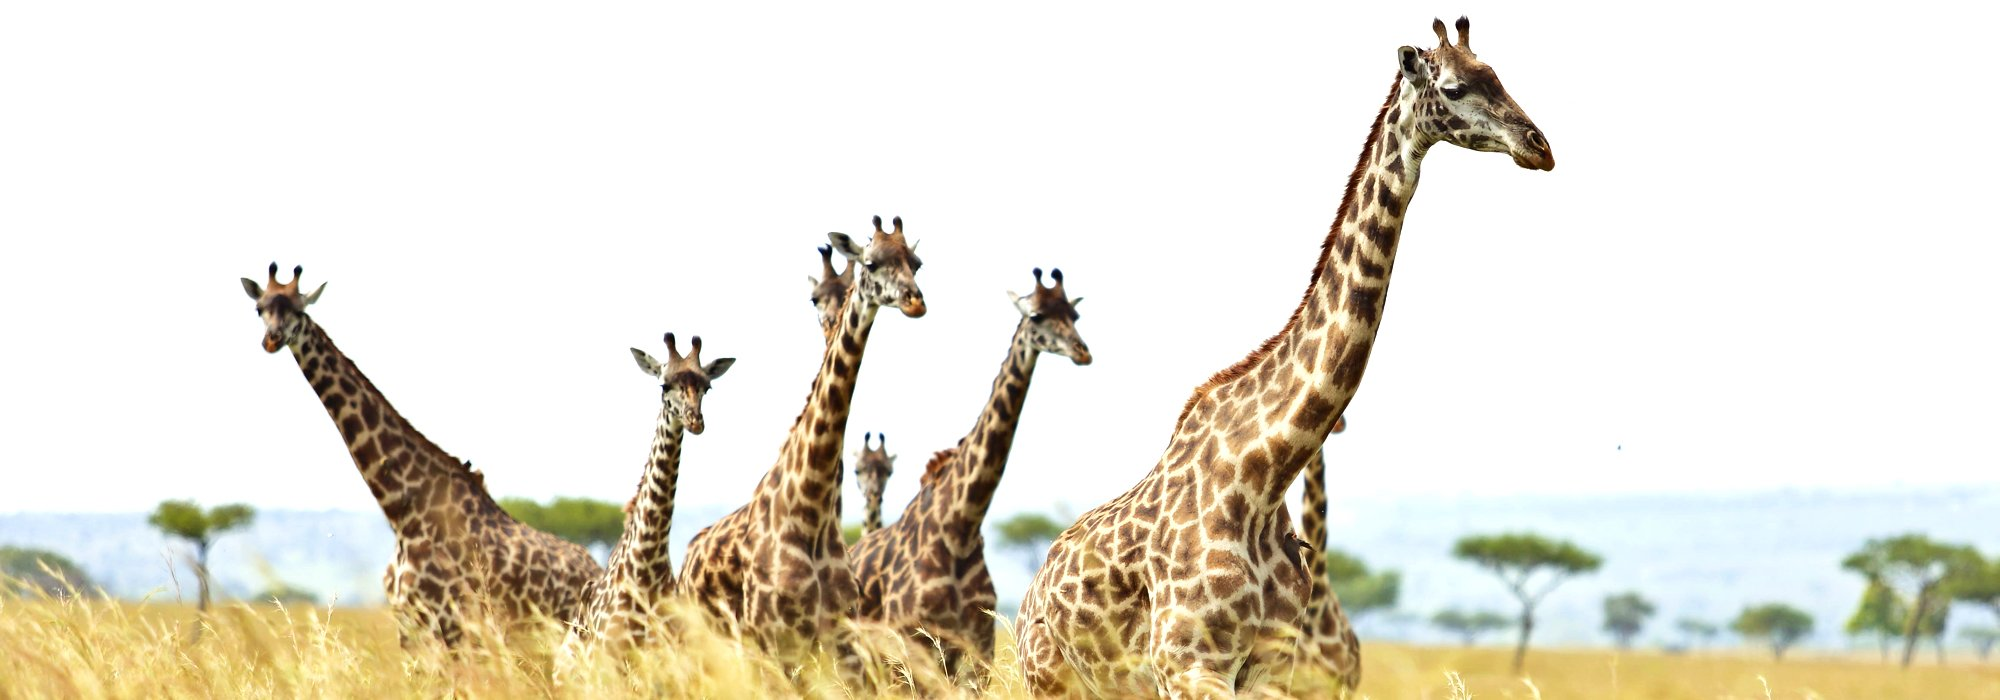 A Journey of Giraffes on the Maasai Mara